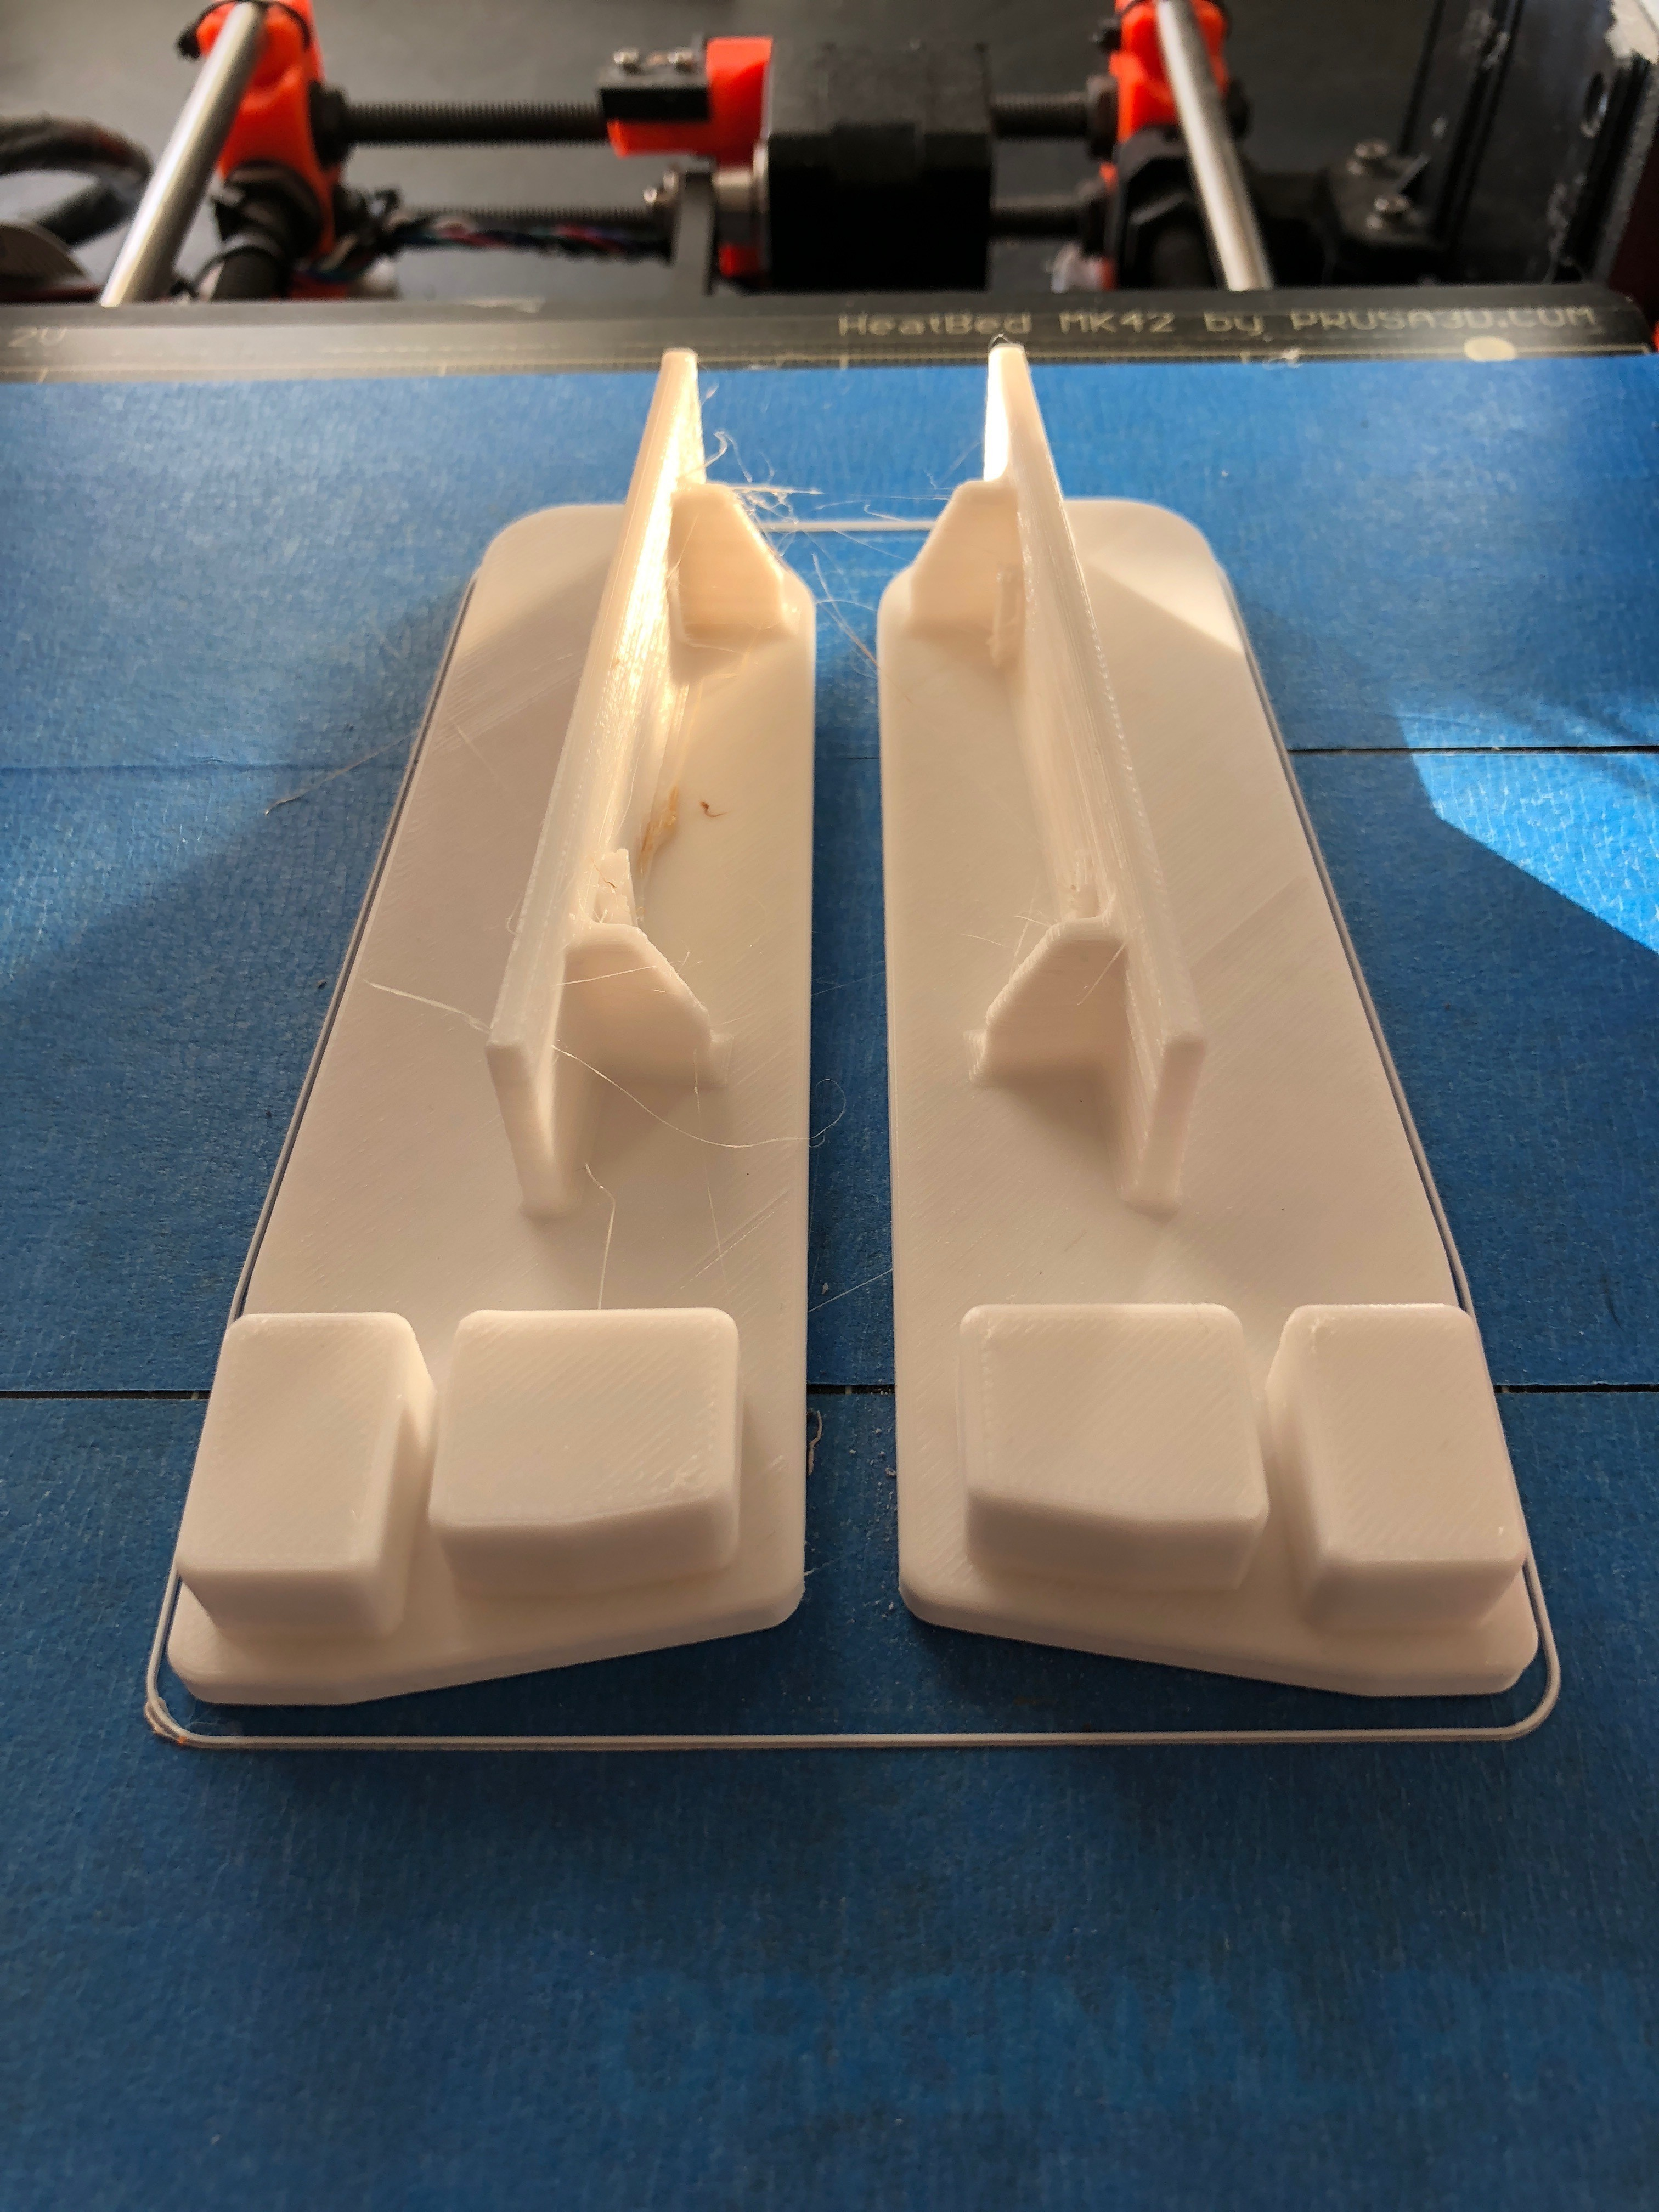 IMG_2423 2.jpeg Download STL file nicotine tray extender • 3D printing template, DMS88